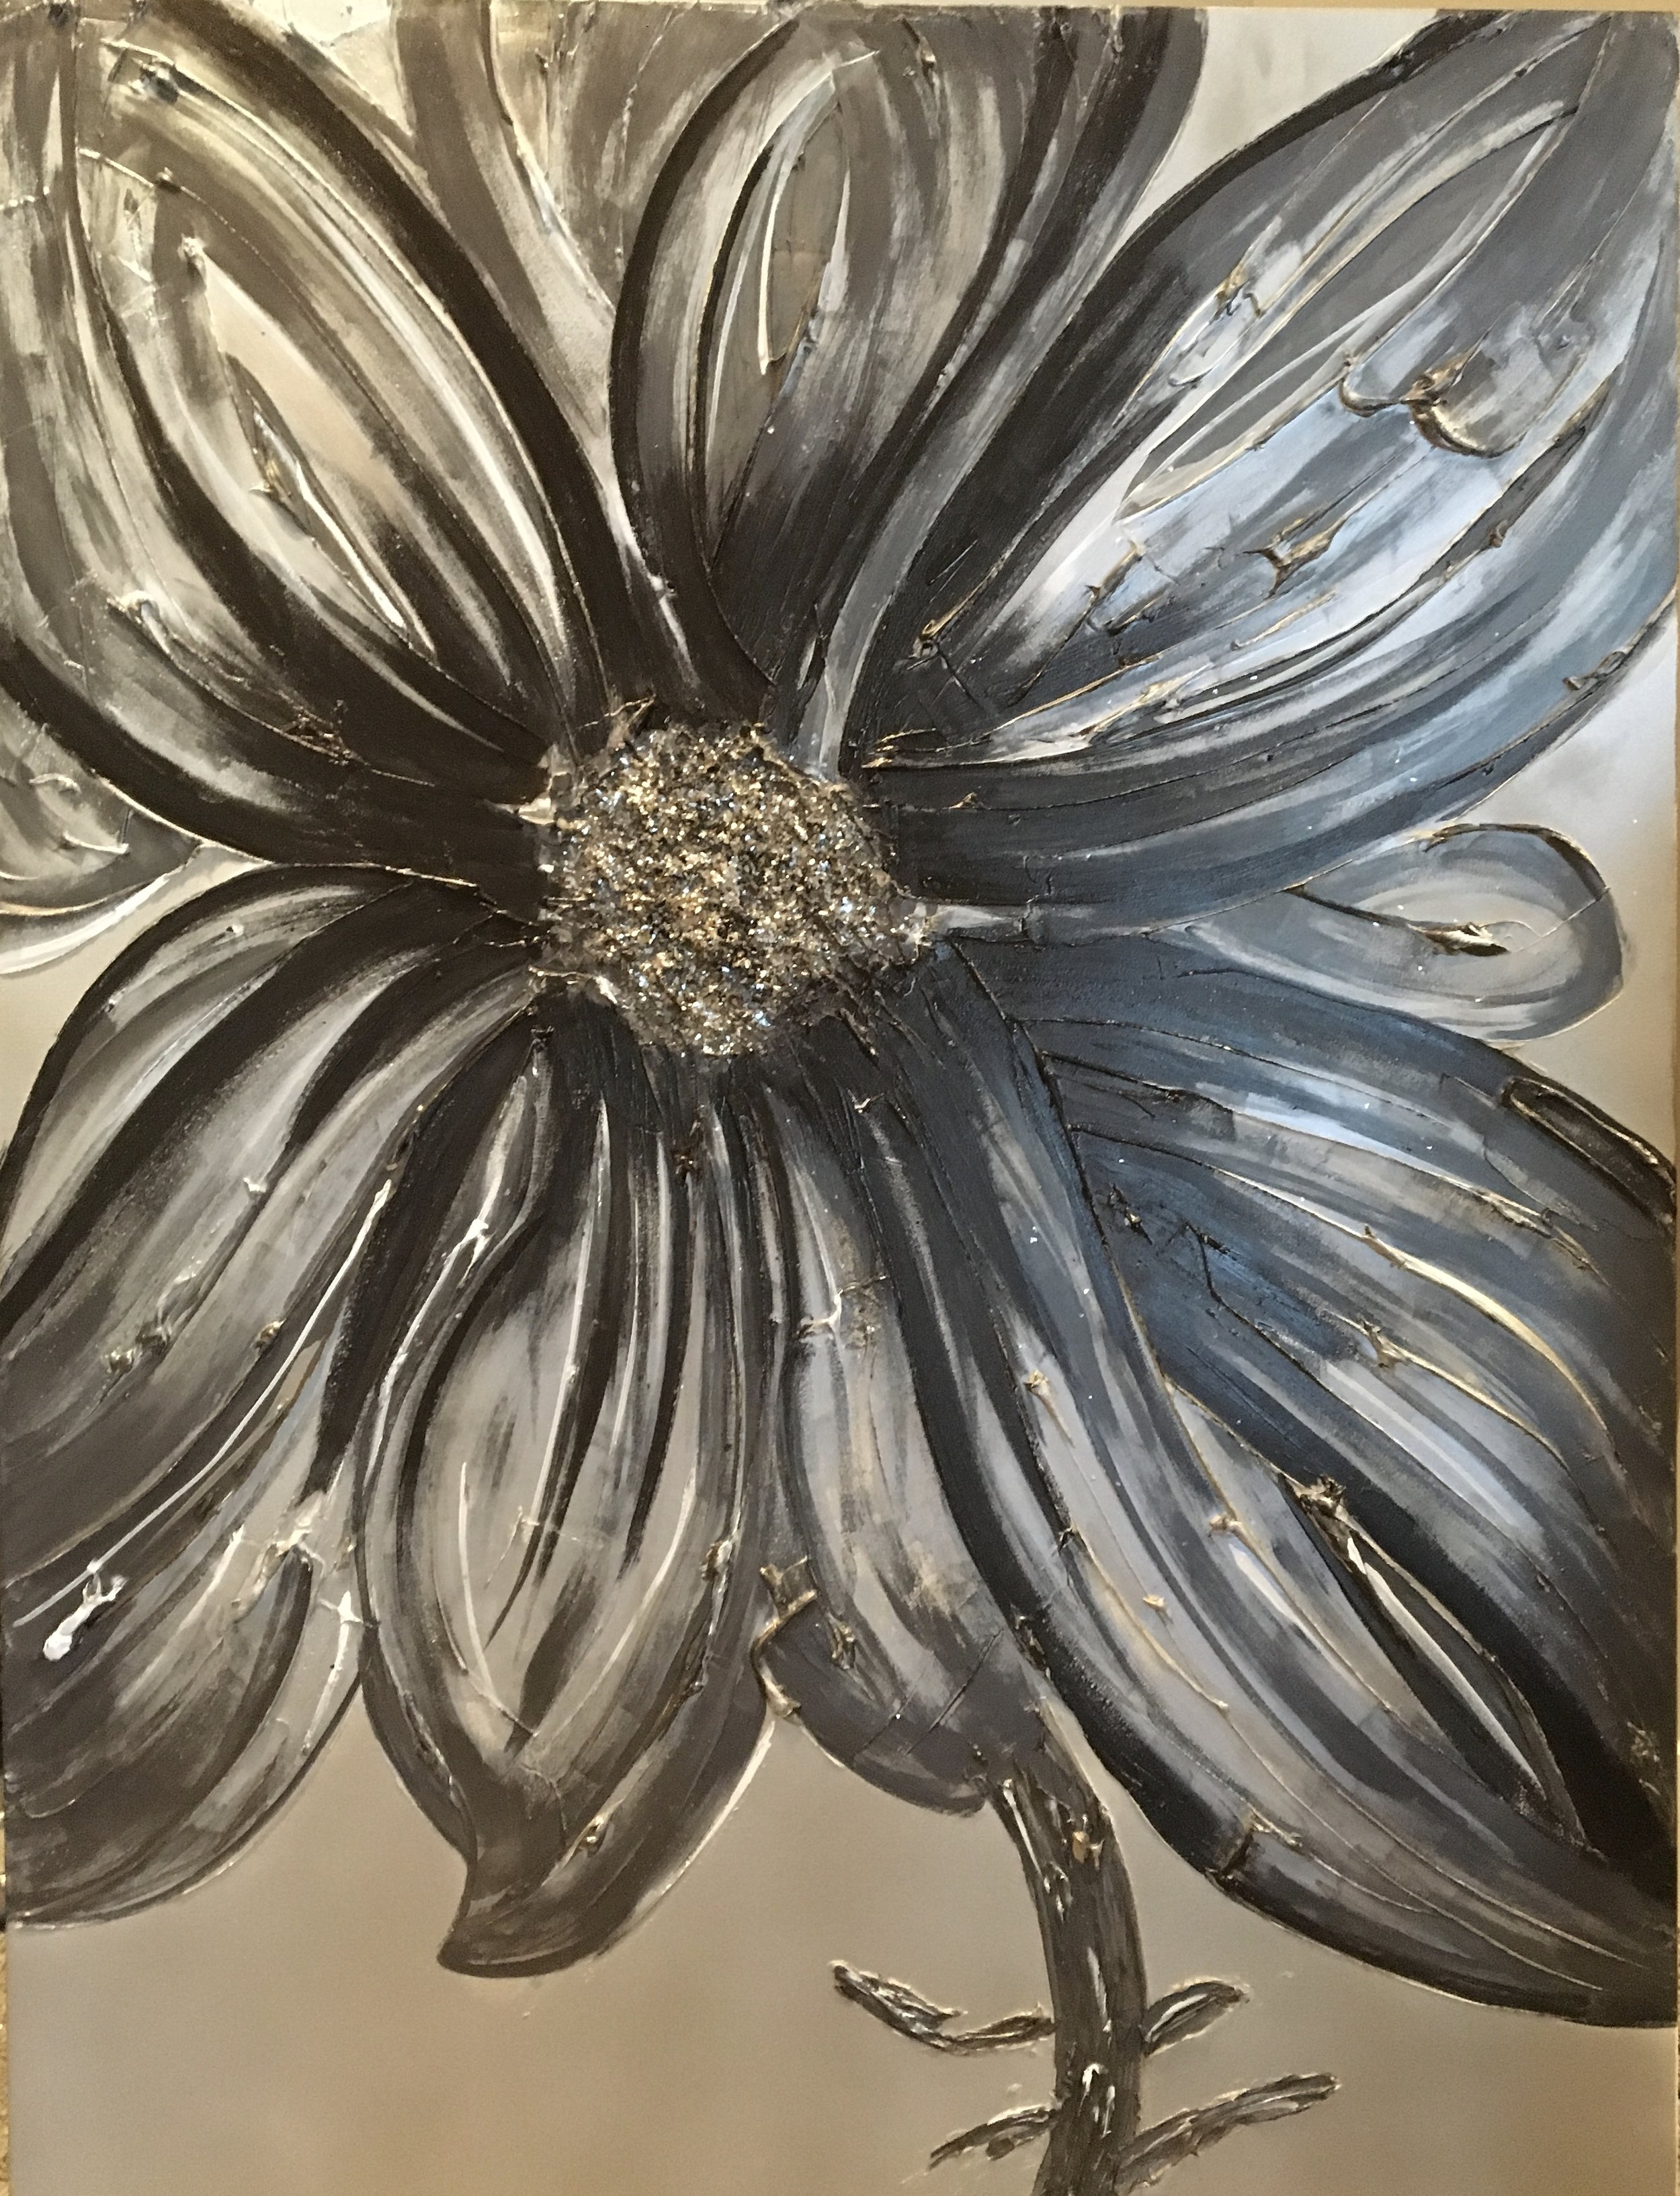 This 'Bloom' is darker and is shown with oil rubbed bronze and silver/grey tones in a 36x48